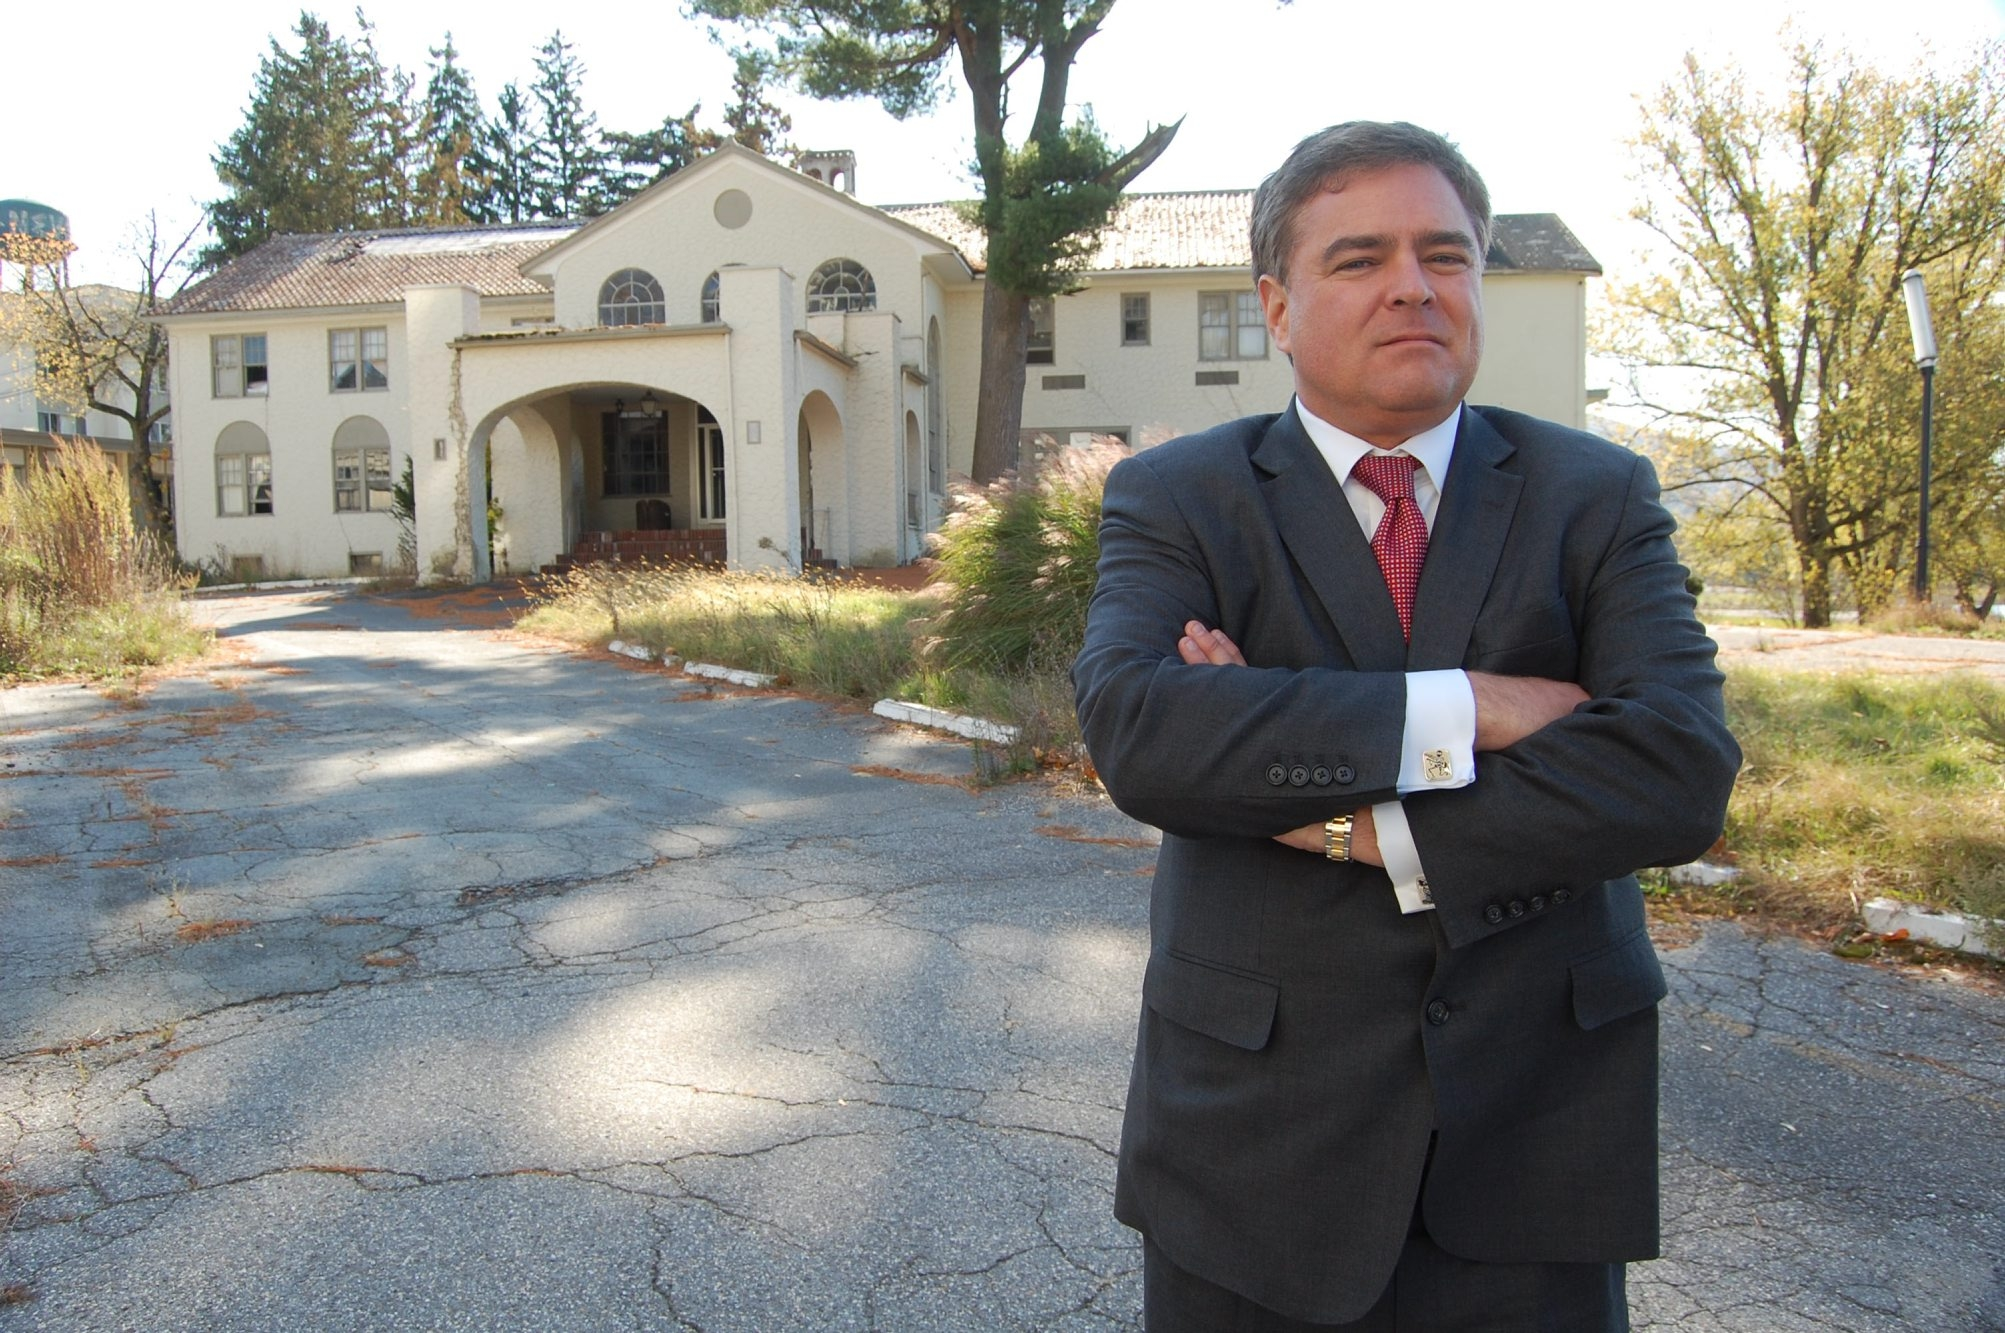 Michael R. Treanor, one of 35 investors hoping to bring a casino to the shuttered Nevele resort in Wawarsing, 90 minutes from George Washington Bridge, sees approval of referendum as key to rejuvenation of tourism.